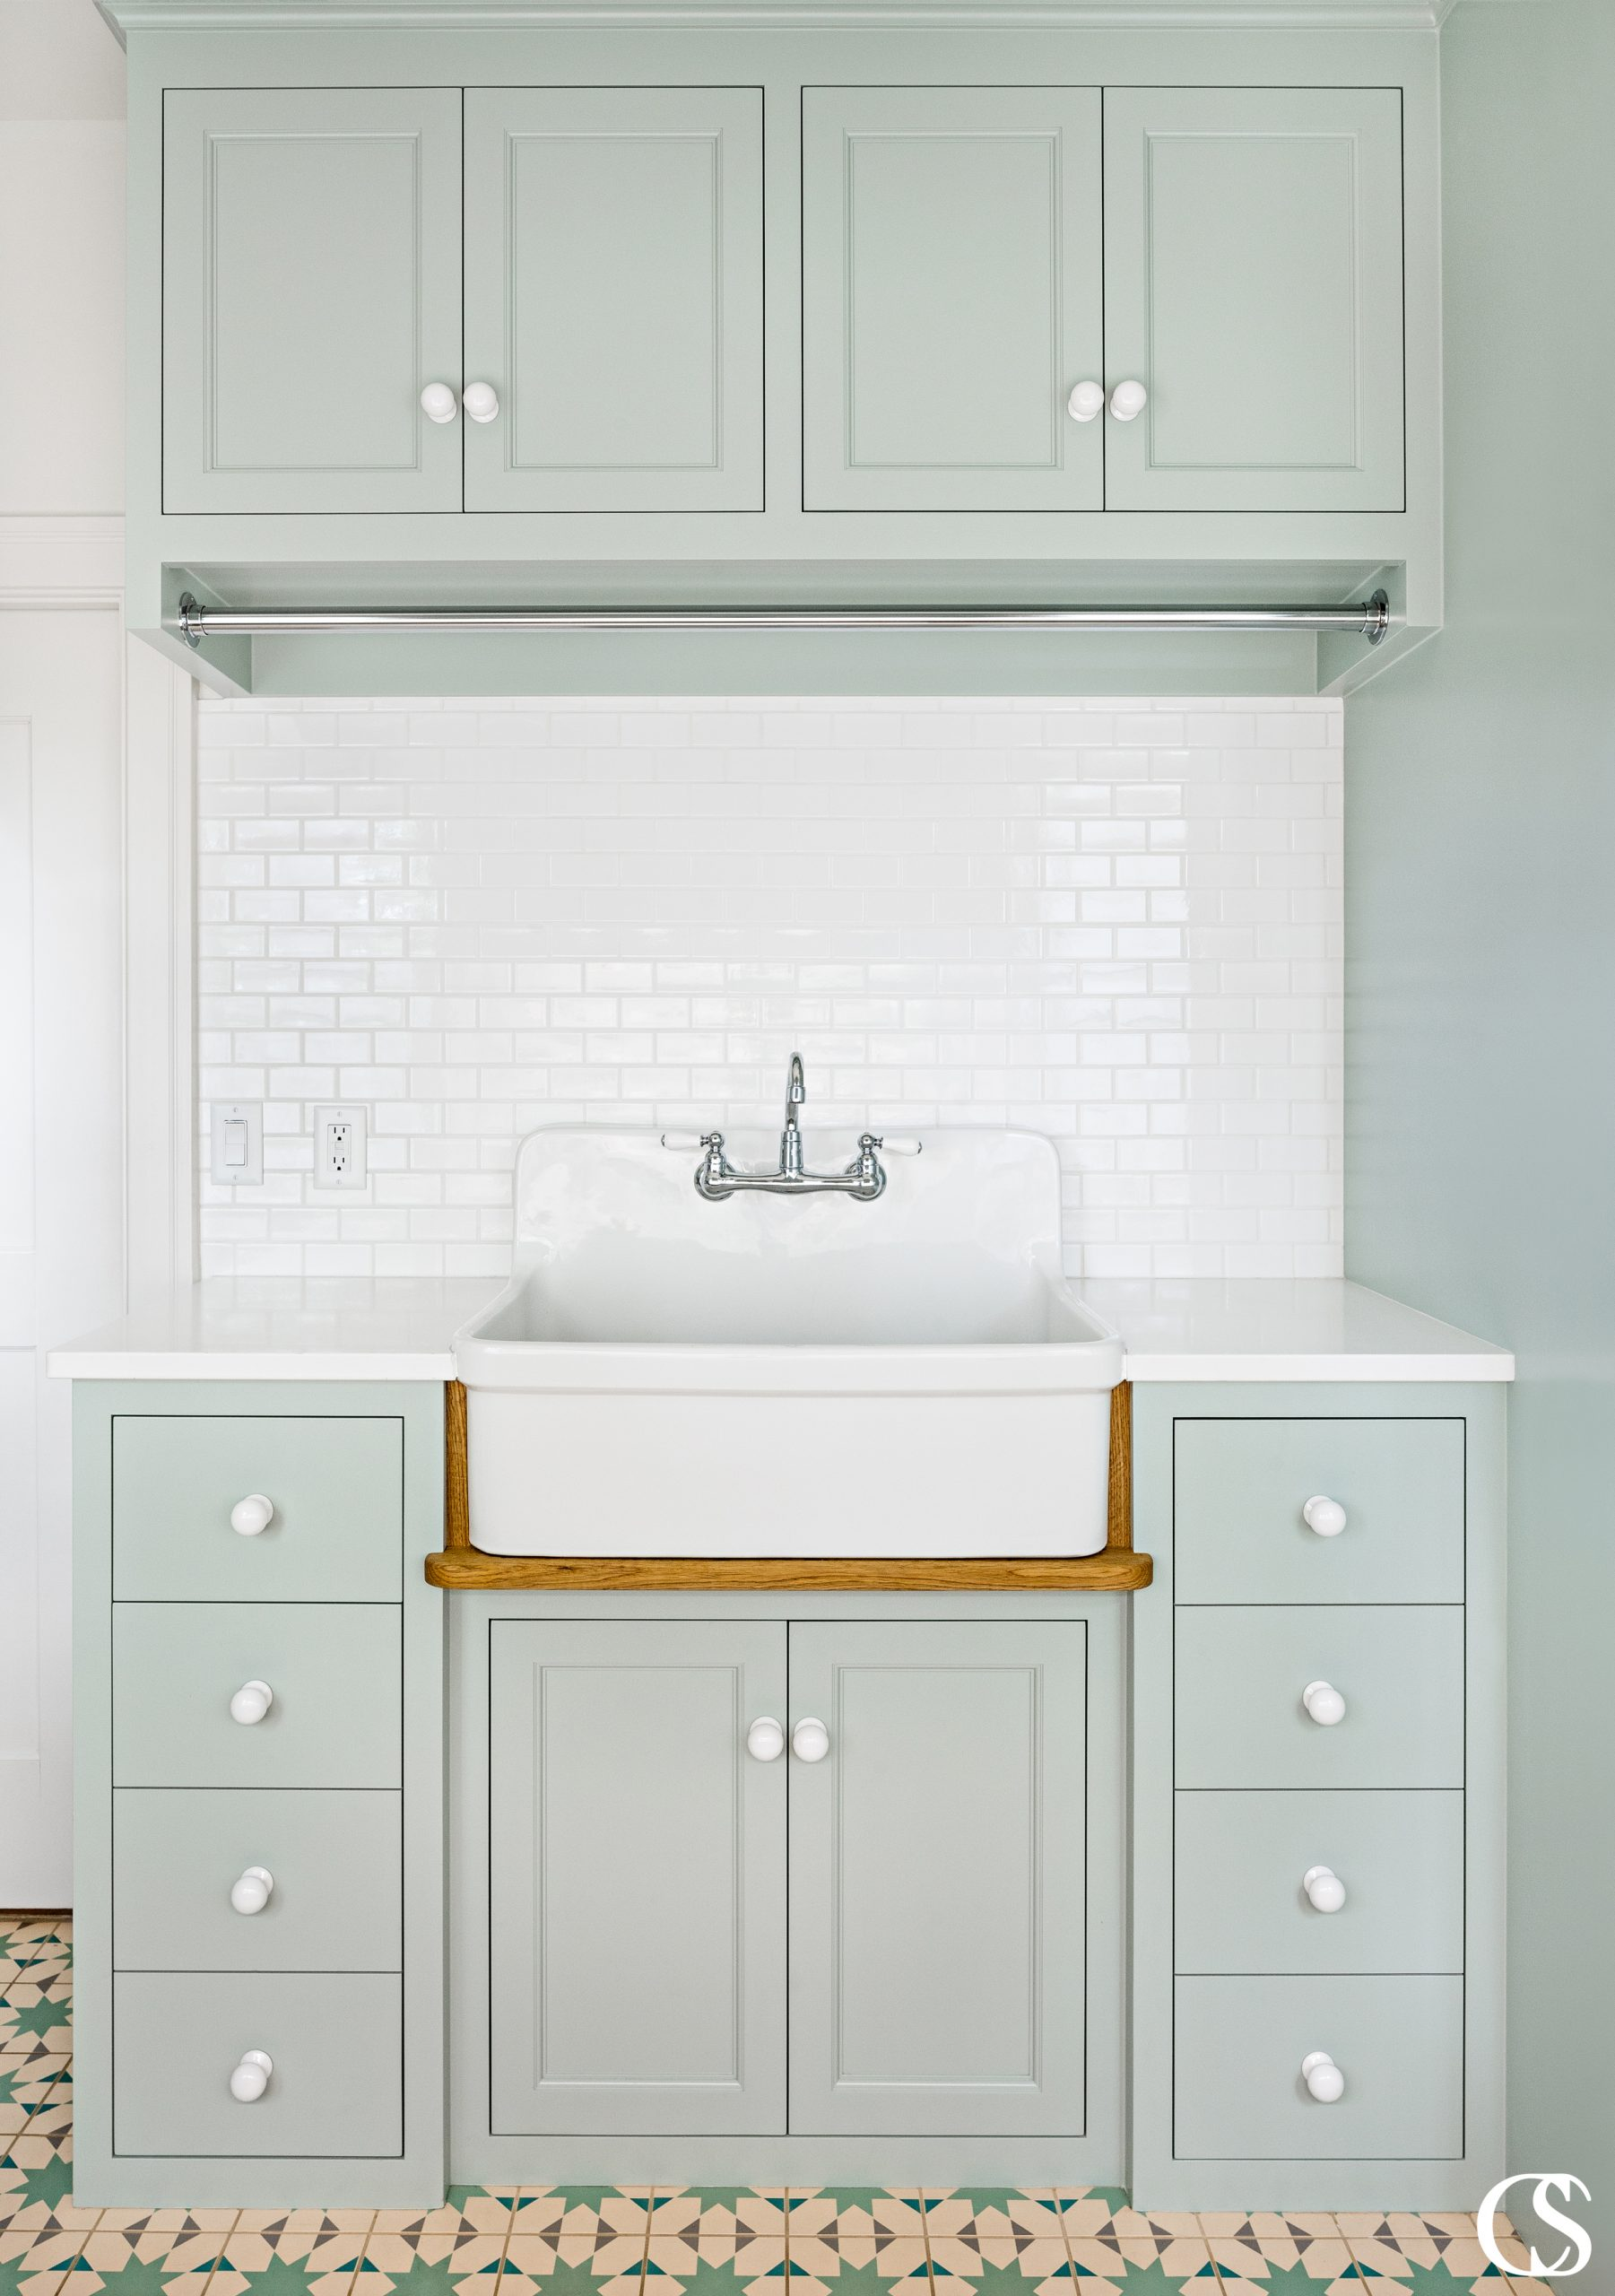 Considering making a statement in your home? Why not do it with unique custom cabinetry from Christopher Scott Cabinetry?